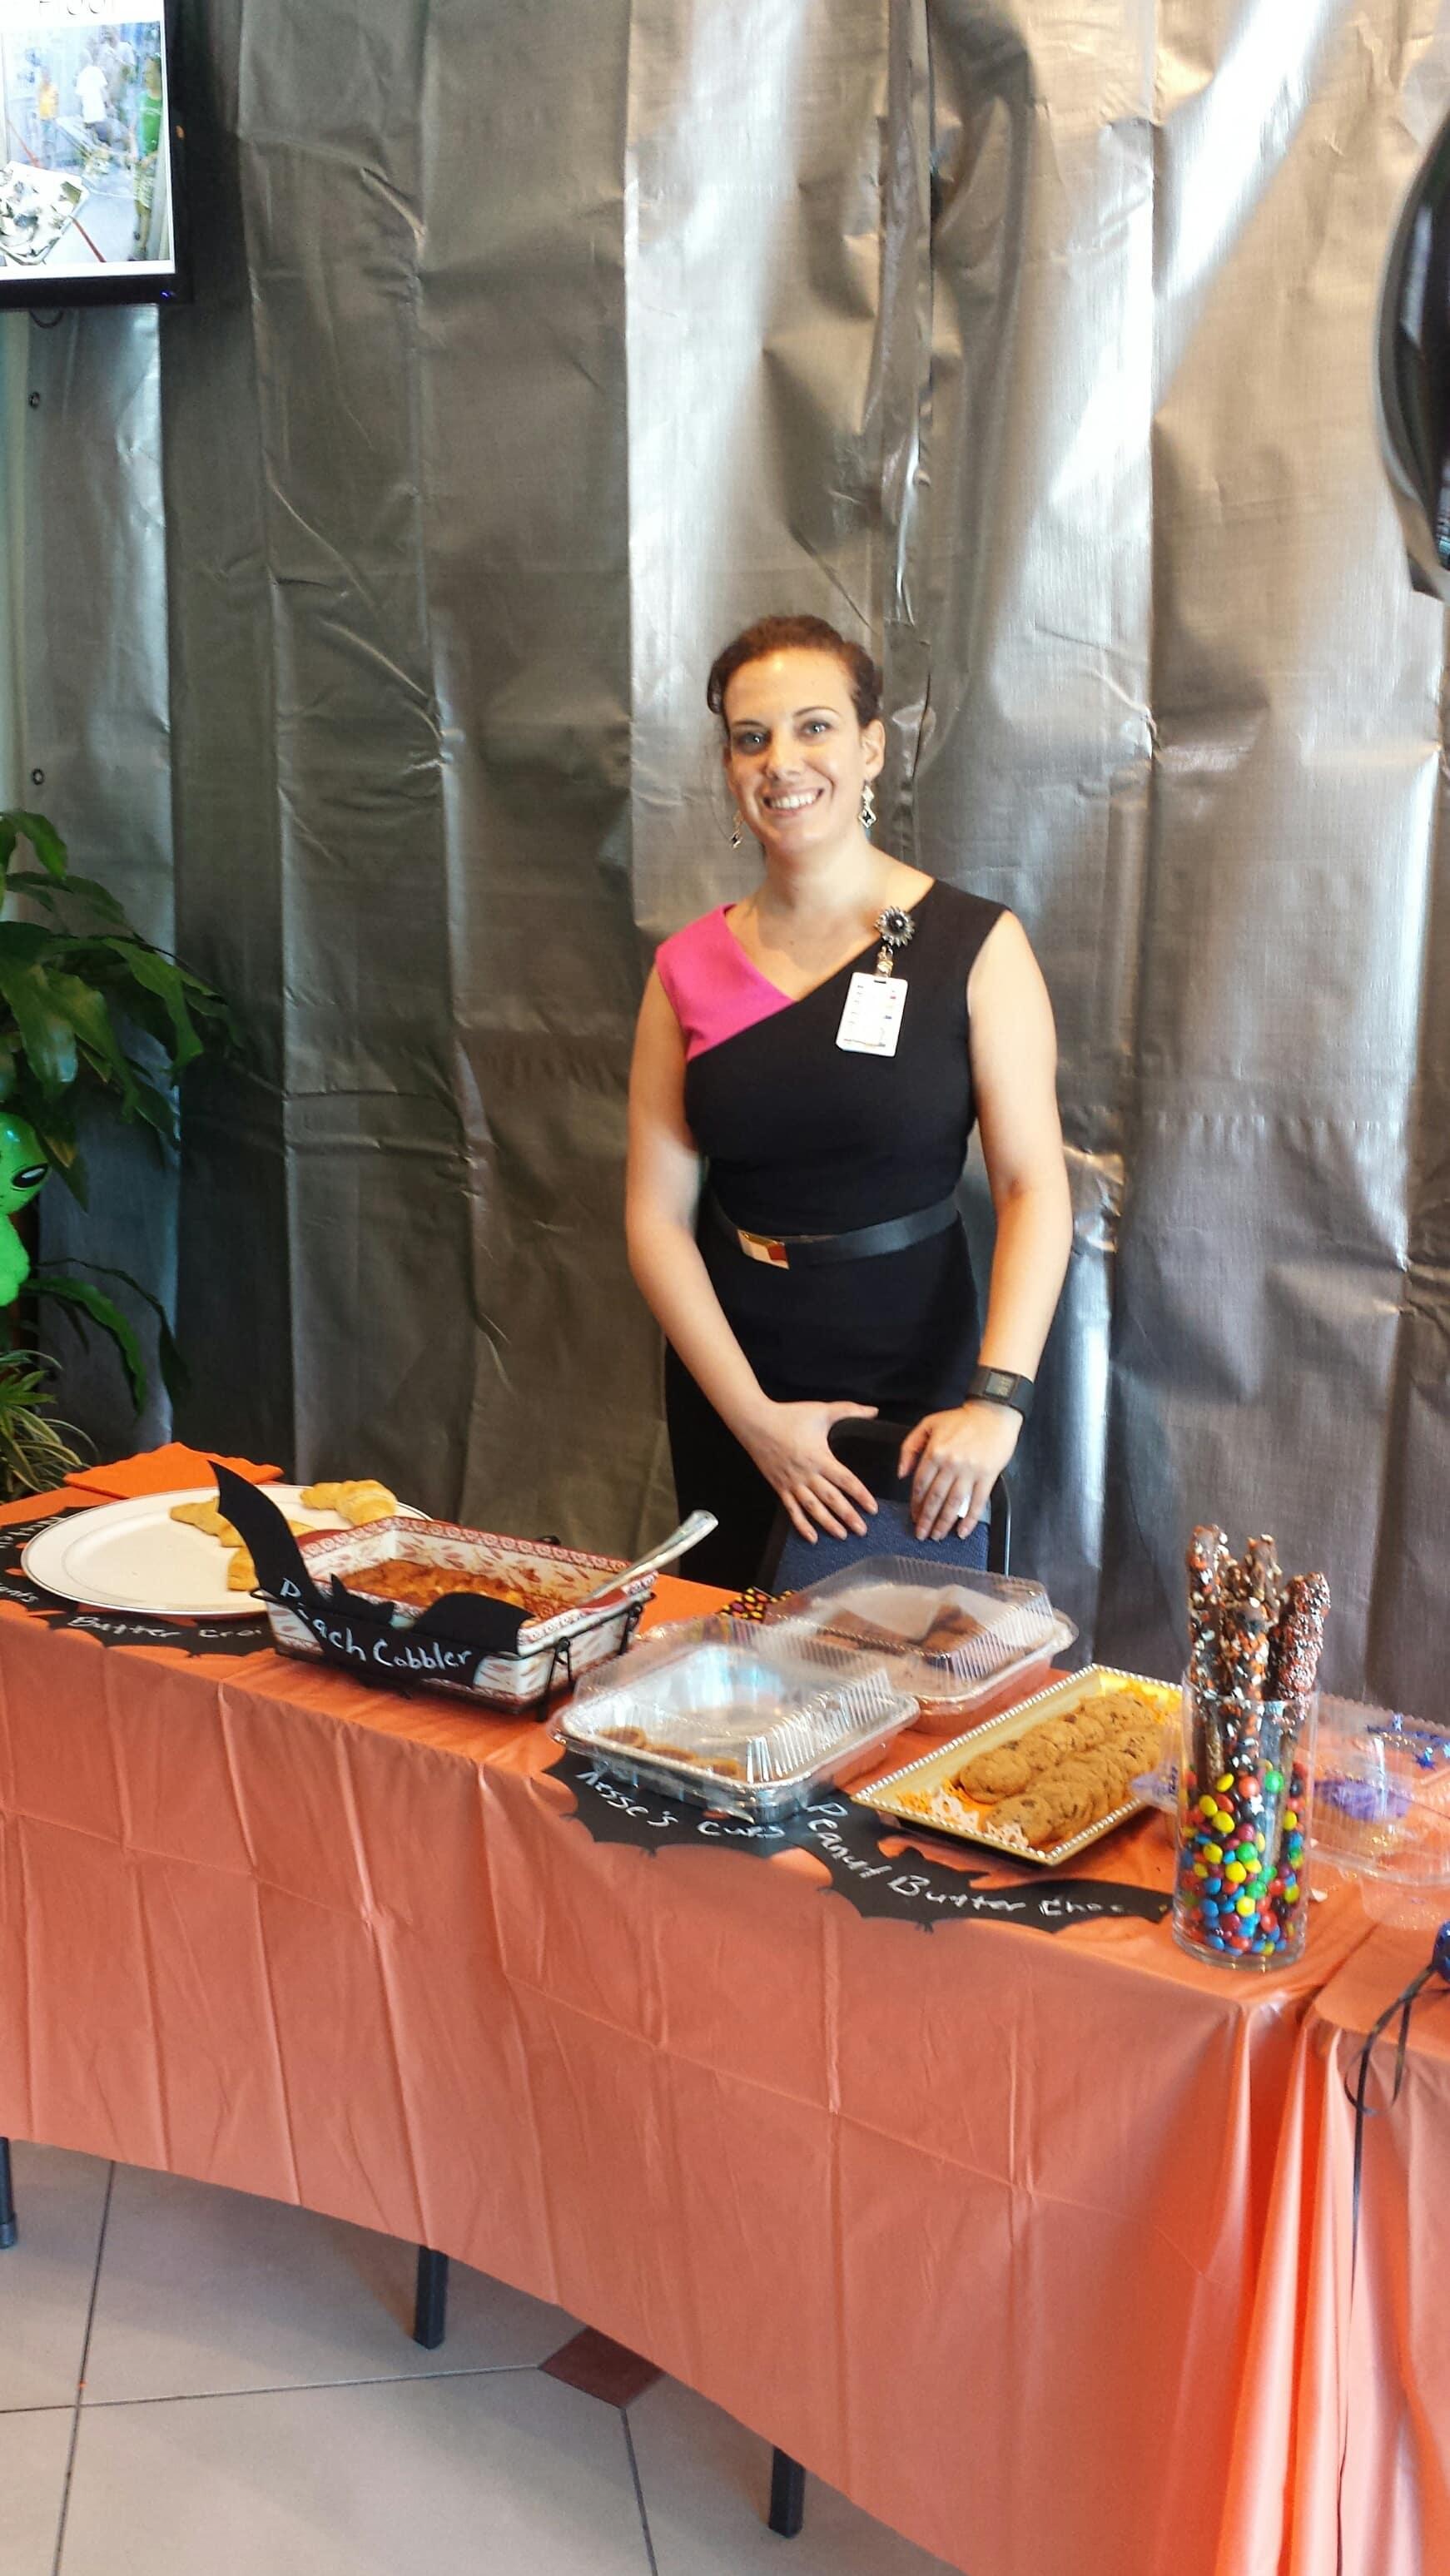 The West Palm Beach Campus Raises Funds for Quantum House